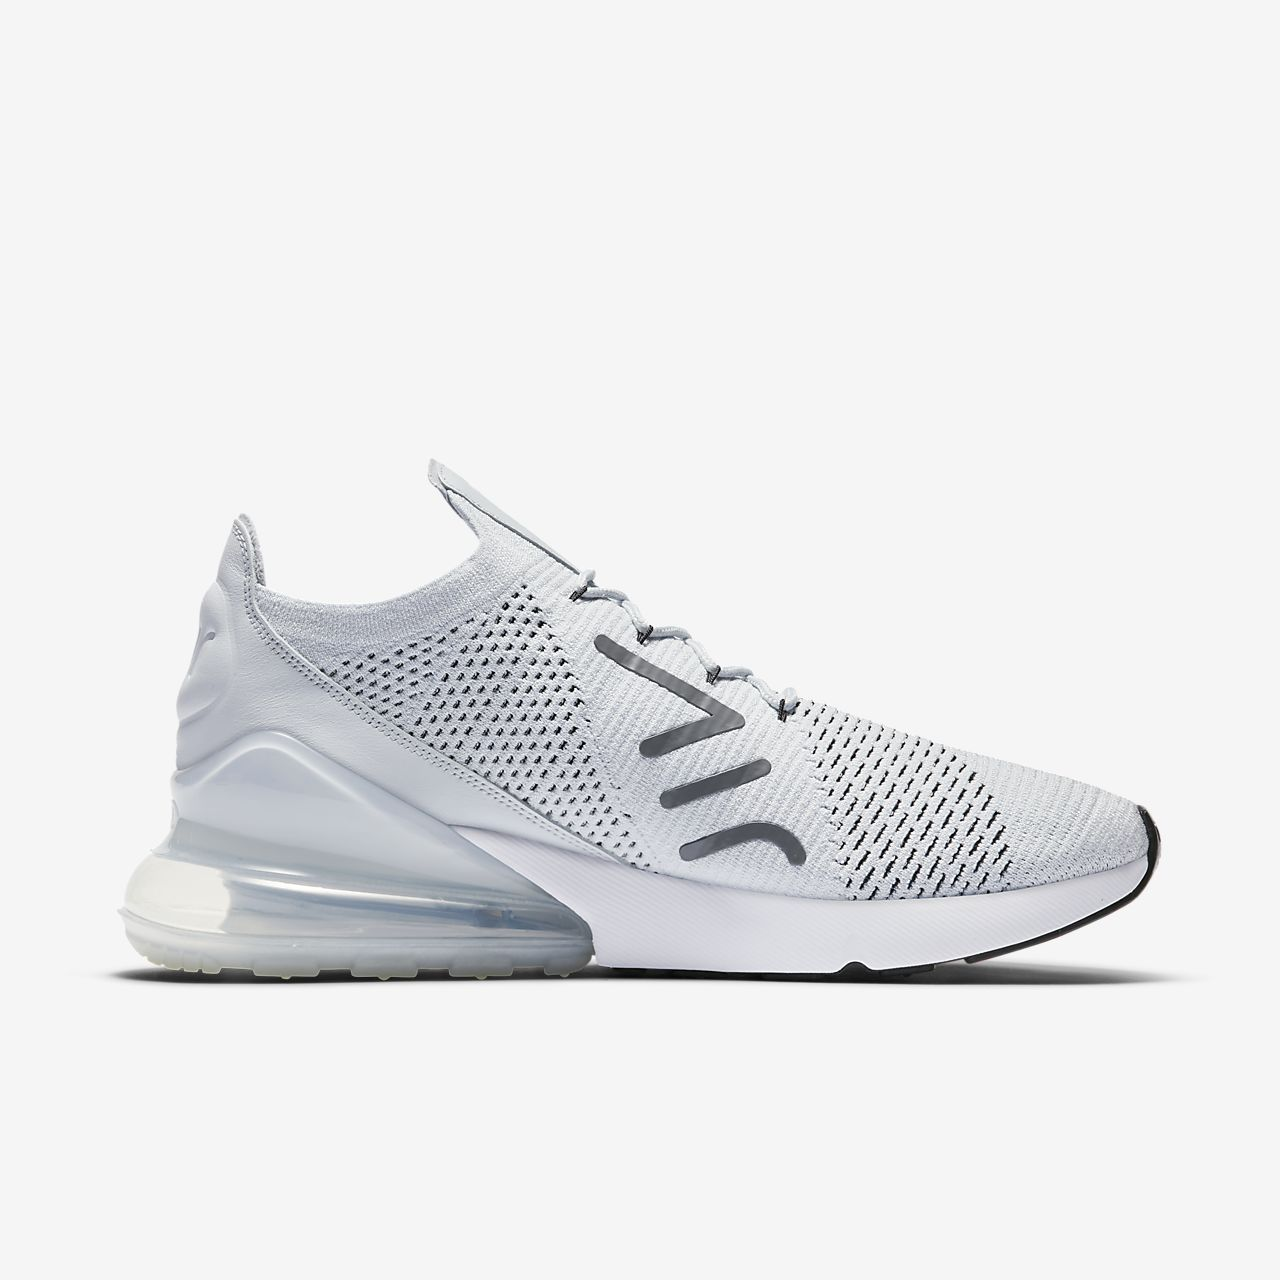 ... Nike Air Max 270 Flyknit Men's Shoe